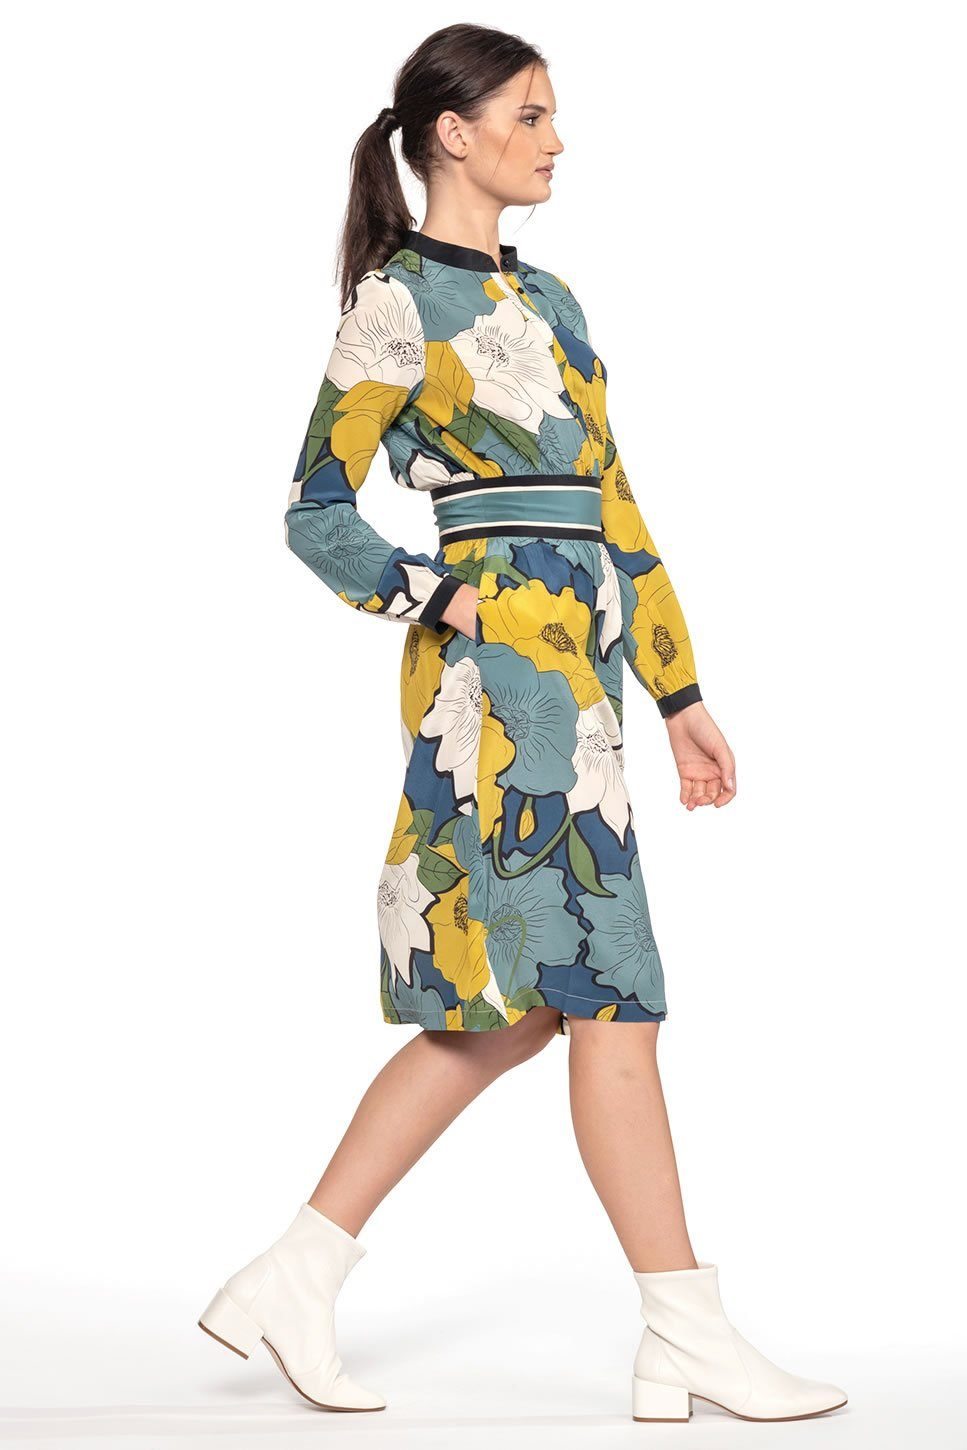 One model wearing a ladies midi, silk dress in La Jolla print on a white background.